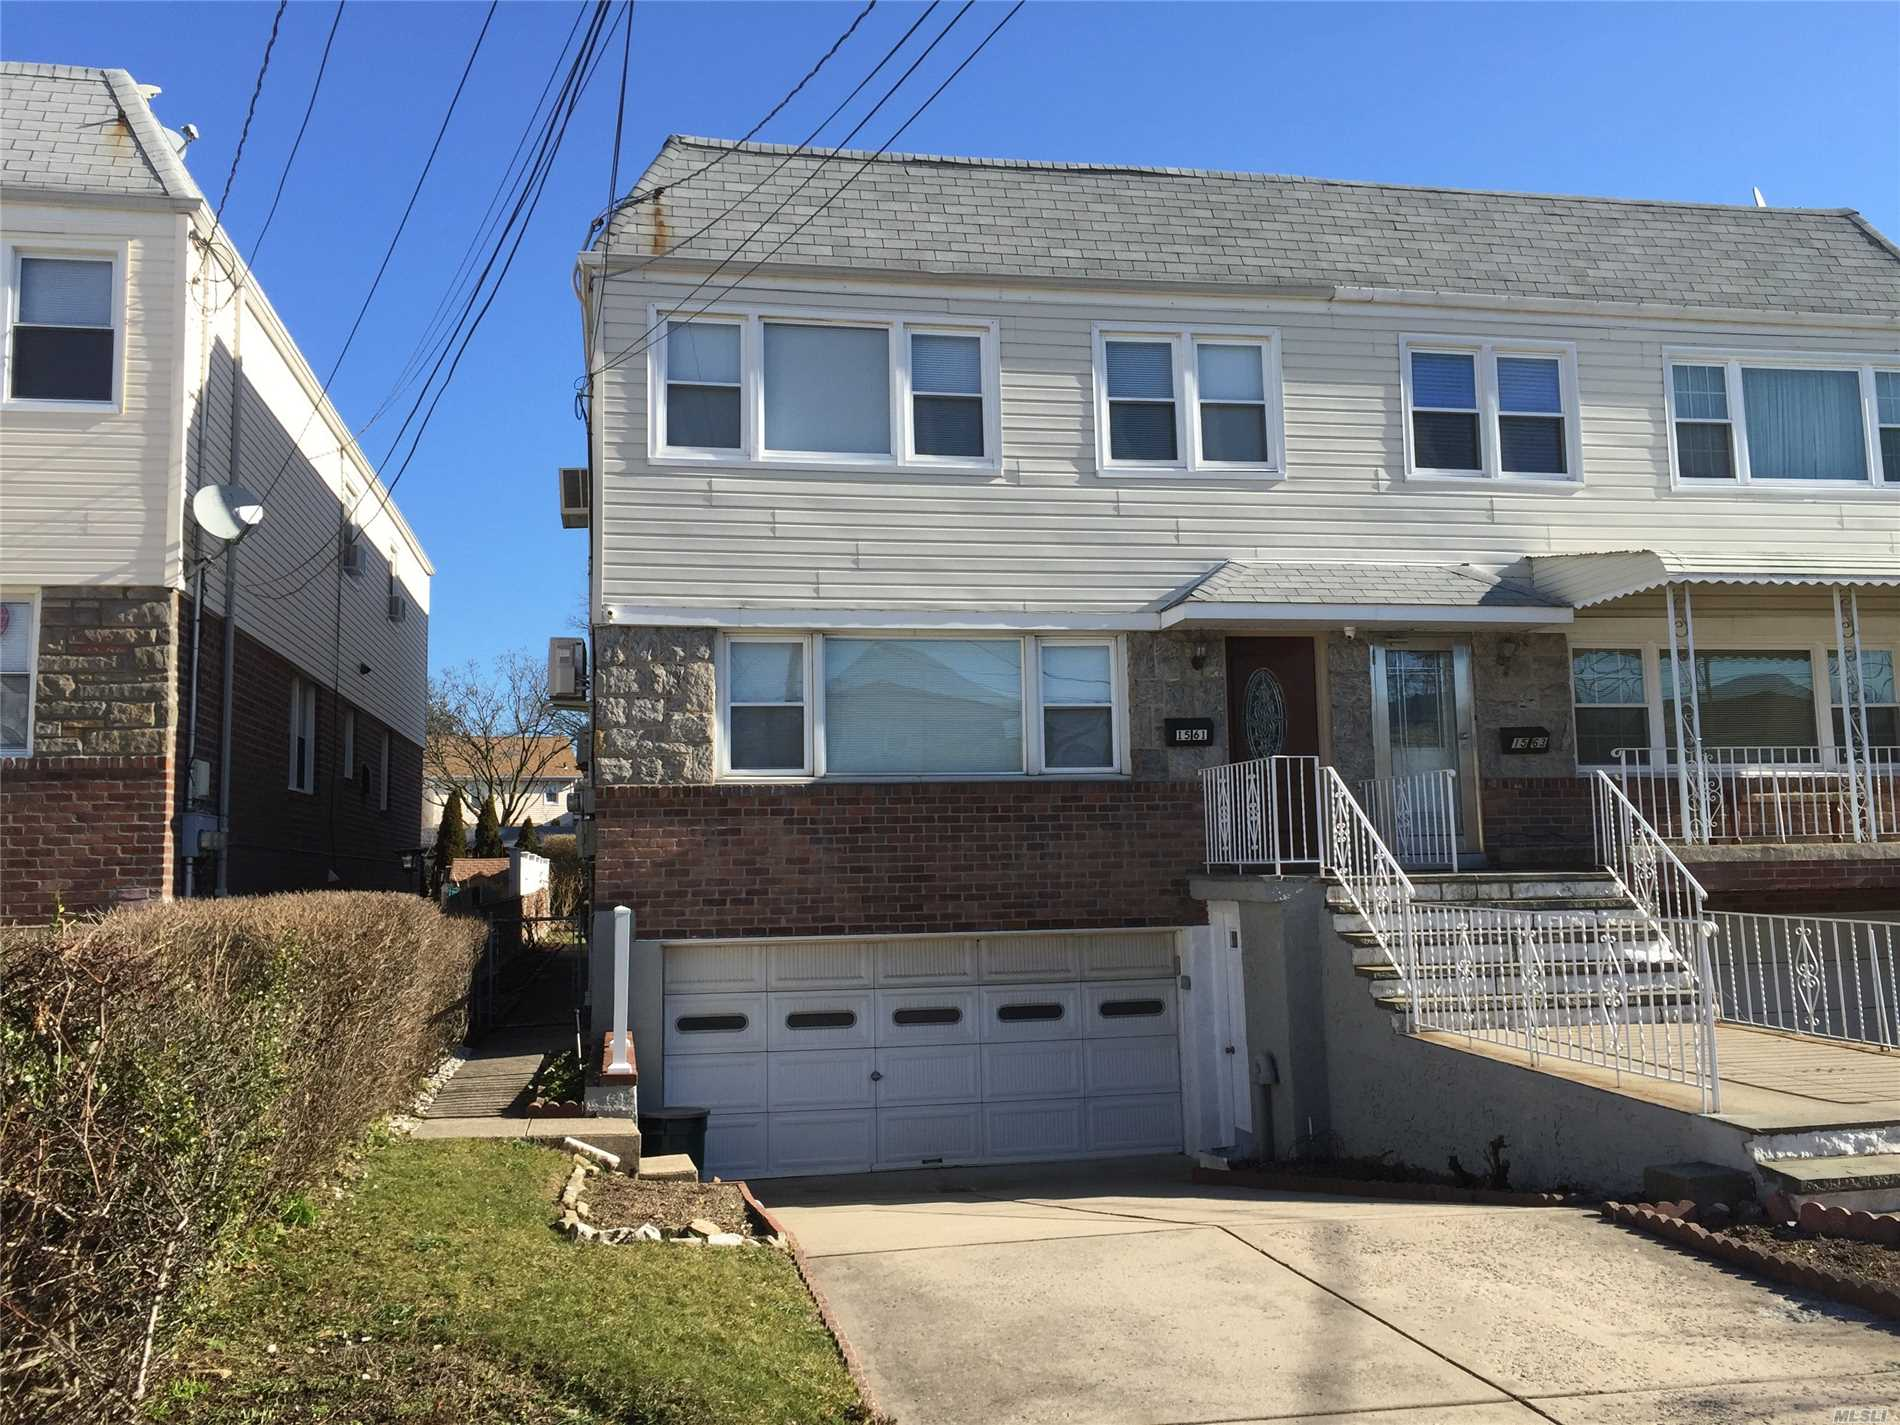 Prime Area In Whitestone, Sunny Semi Detached 2 Fam W. Extra Deep Property, 3Beds Over 2 Beds(Can Be Easily Converted Into 3 Beds) Plus Finished Front Walk In Basement, Building Size 22X51, Fully Renovated, Granite Countertop, Stainless Steel Stove/Ref, New Garage Opener, Newer Hot Water Heater, 3Yrs Old Roof, 4-Split Ac-2017, Attached 2 Car Garage Plus Long Driveway, Q15/Q15A/Q76/Qm2/Qm32, Walk To Shopping Mall, School Dist. 26:Ps79, Jhs194, Deliver Vacant